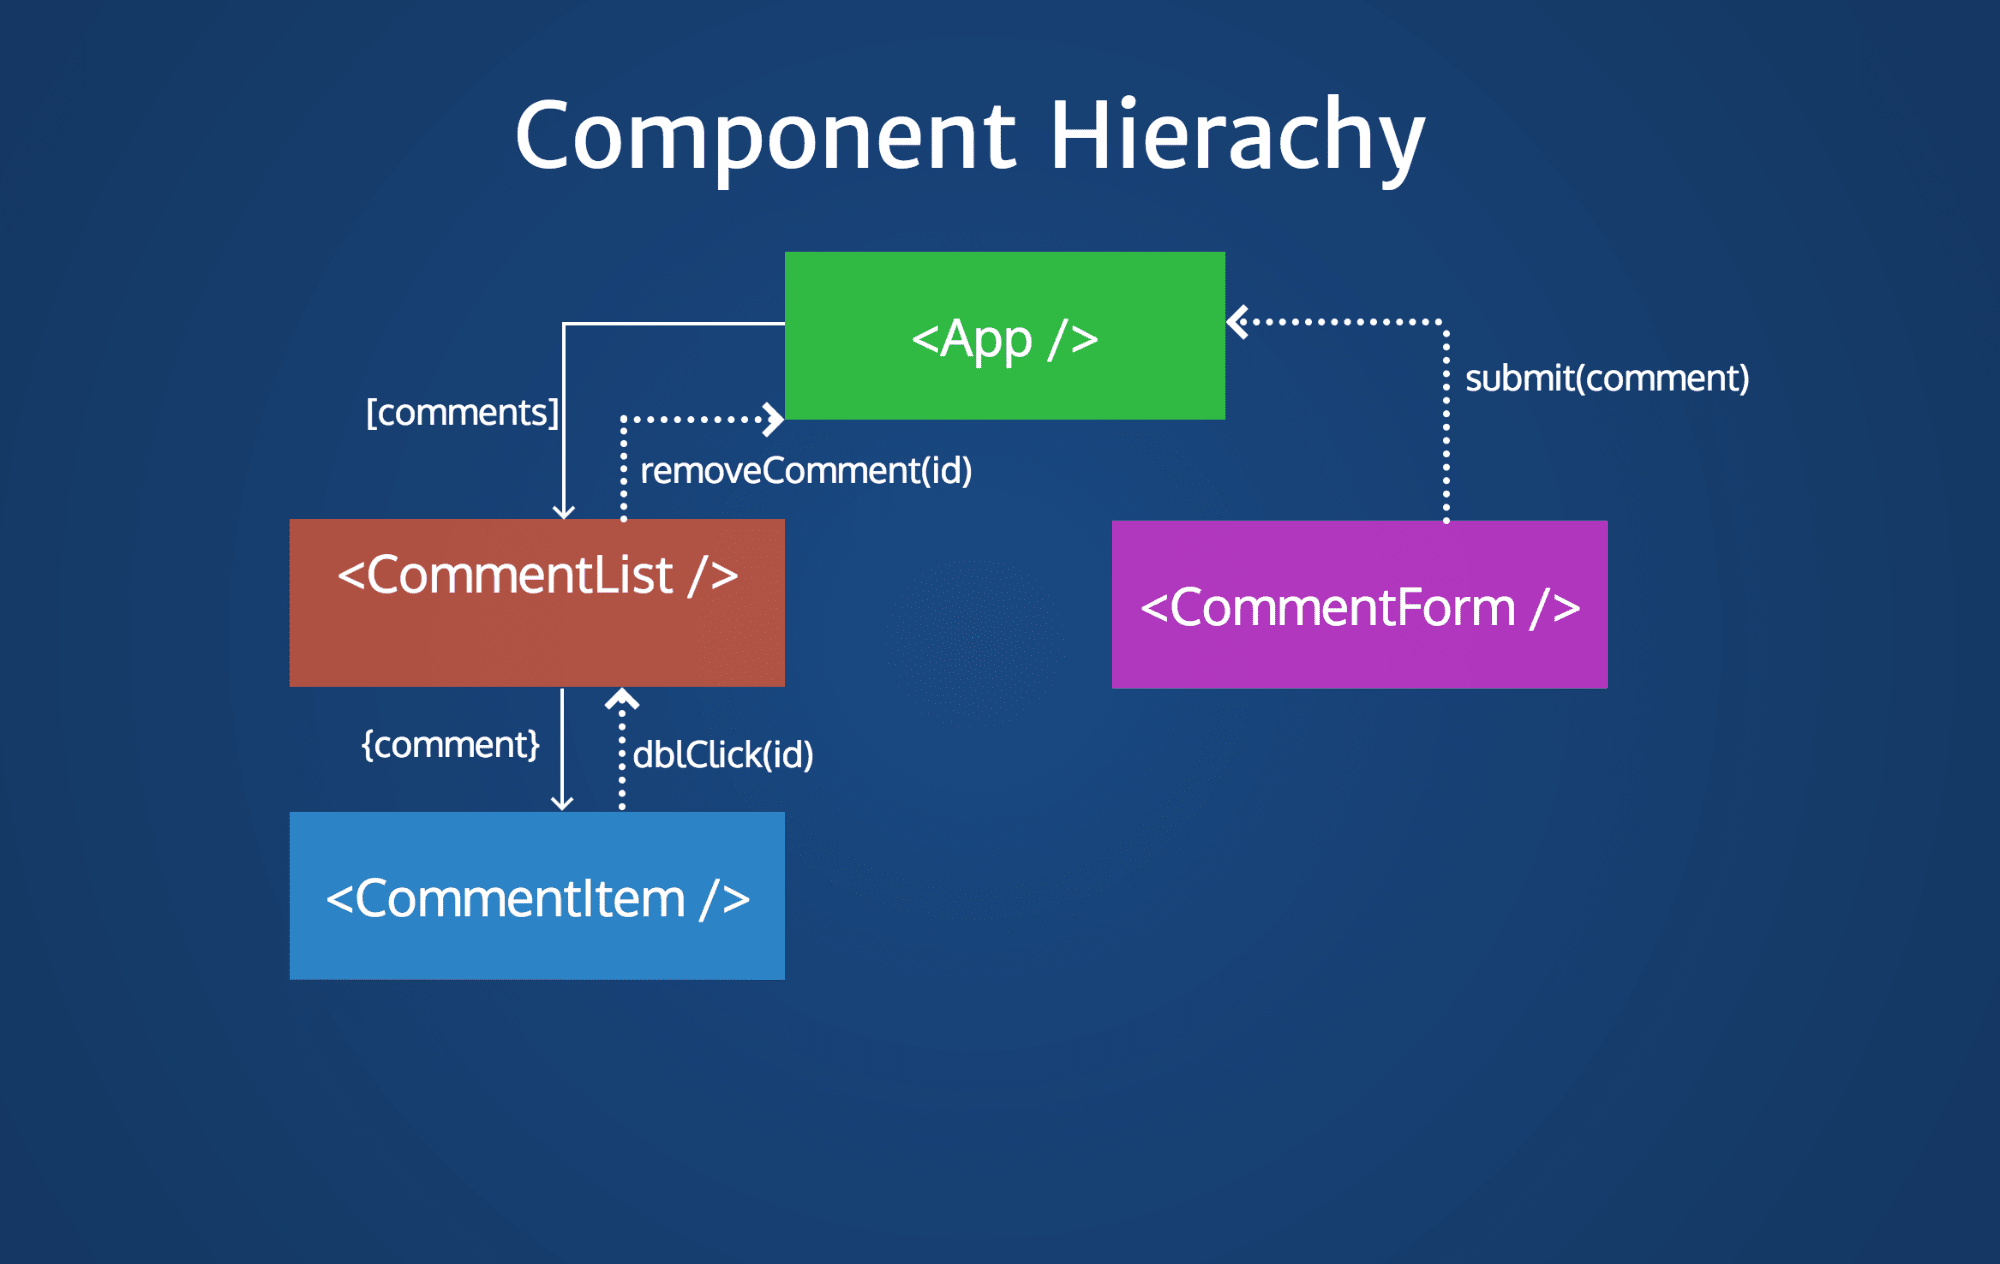 State Management In Vue Getting Started With Vuex Scotch Updated Component Wiring Diagram Click On Components For Write Ups This Is Still Fairly Simple Yet If We Need To Move Data From The App Down Commentitem Have Send Commentlist First